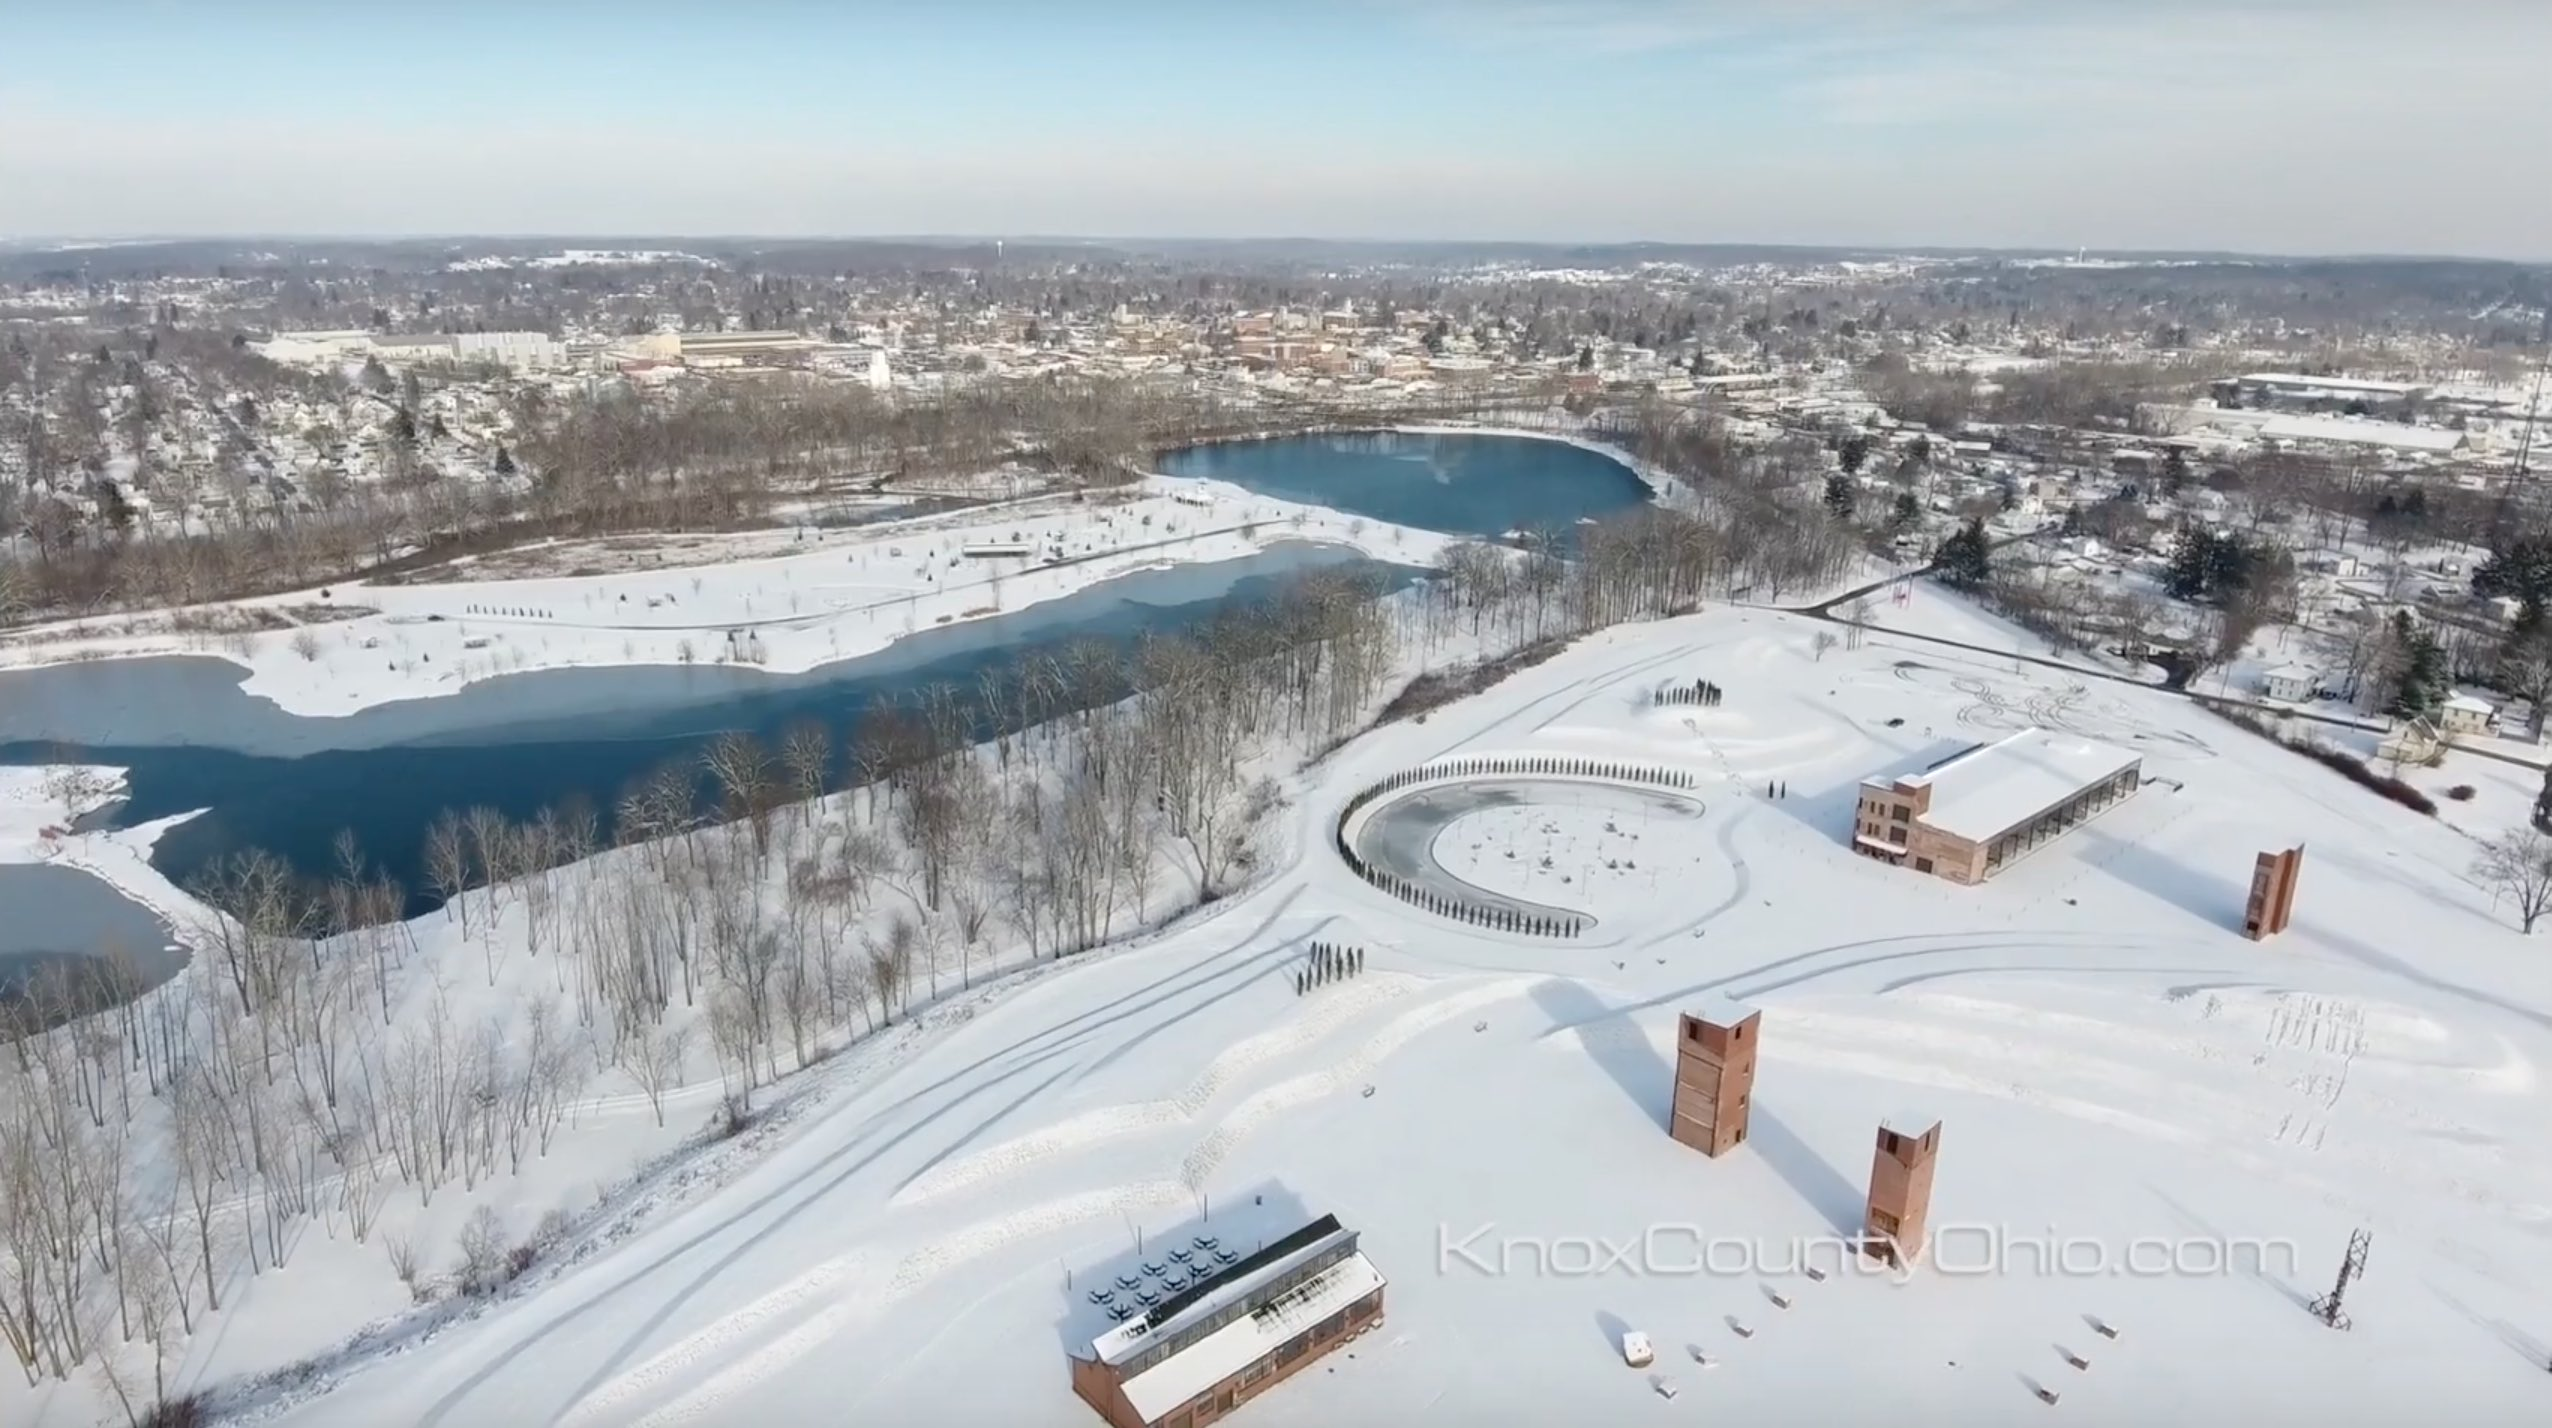 Ariel Foundation Park Winter Time View Photo Taken by Drone